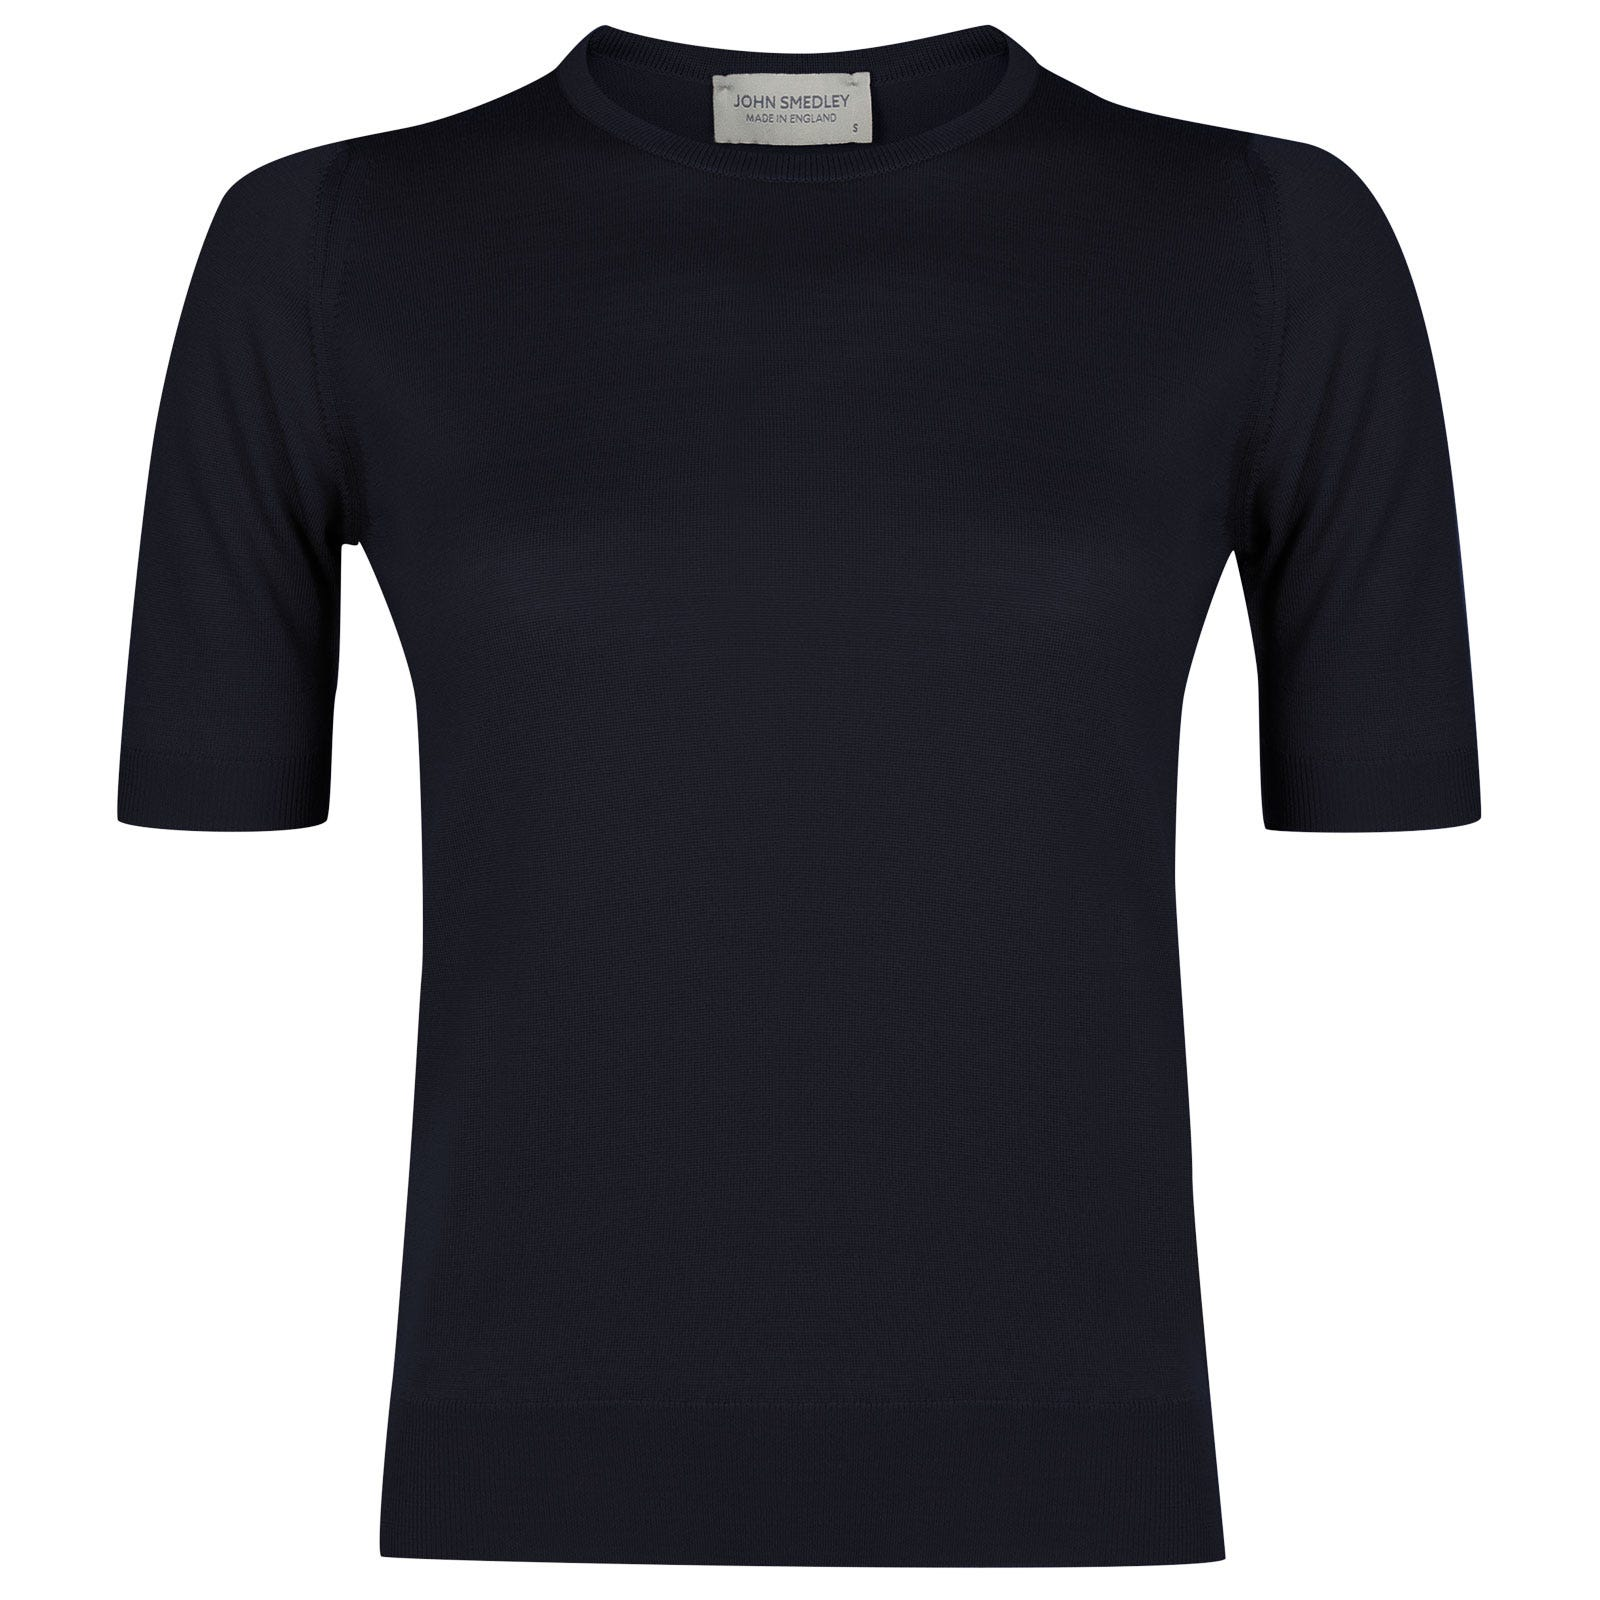 John Smedley trieste Merino Wool Sweater in Midnight-S